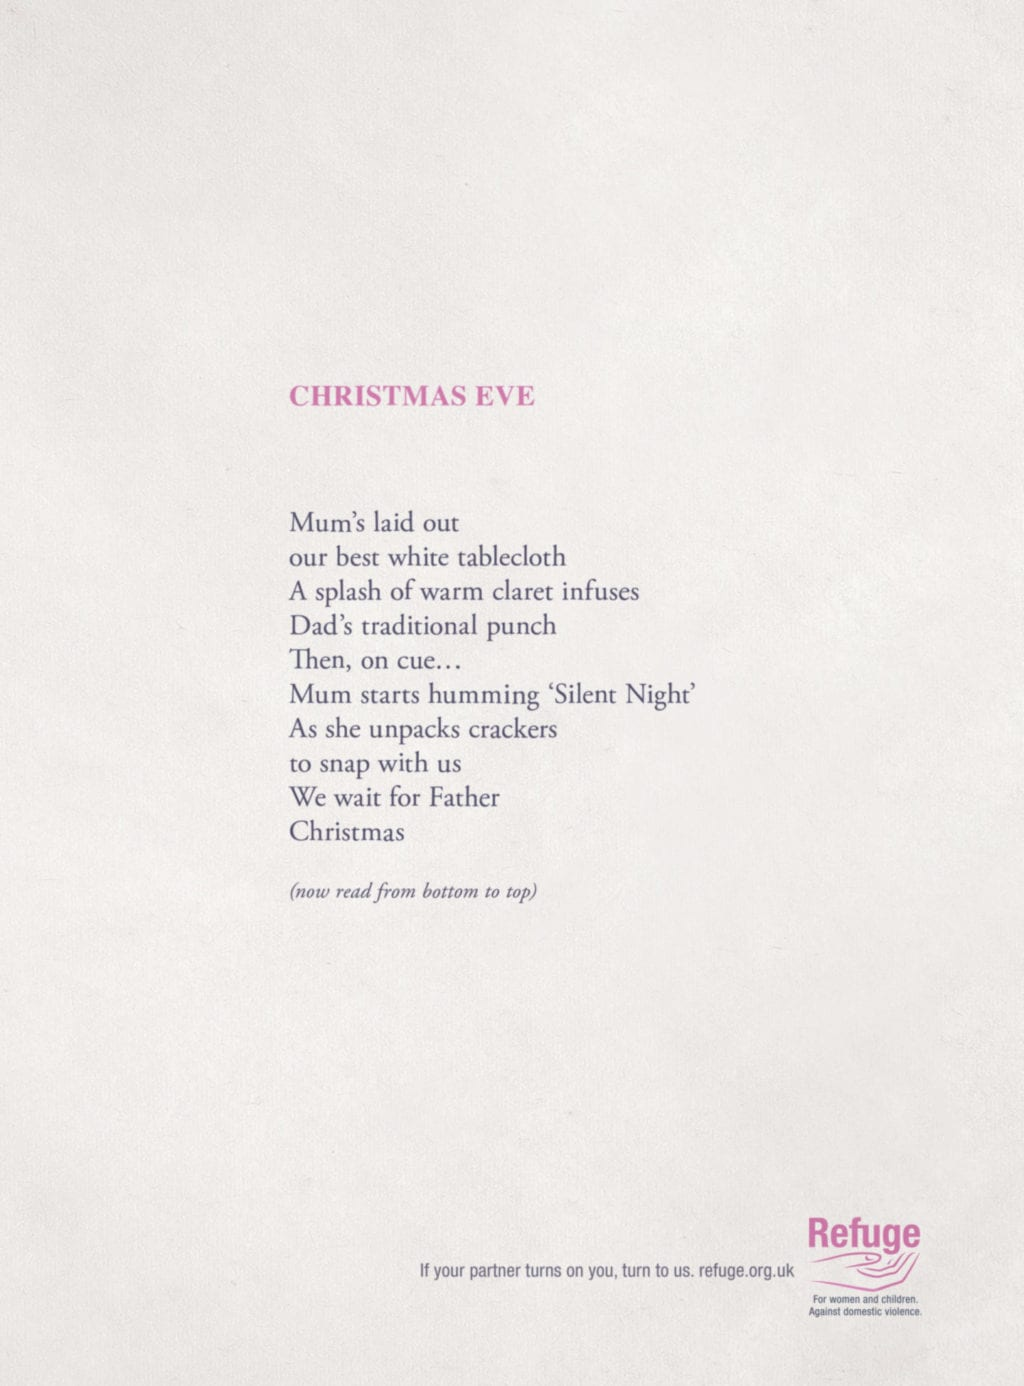 Refuge turns Christmas upside down with reversible poems